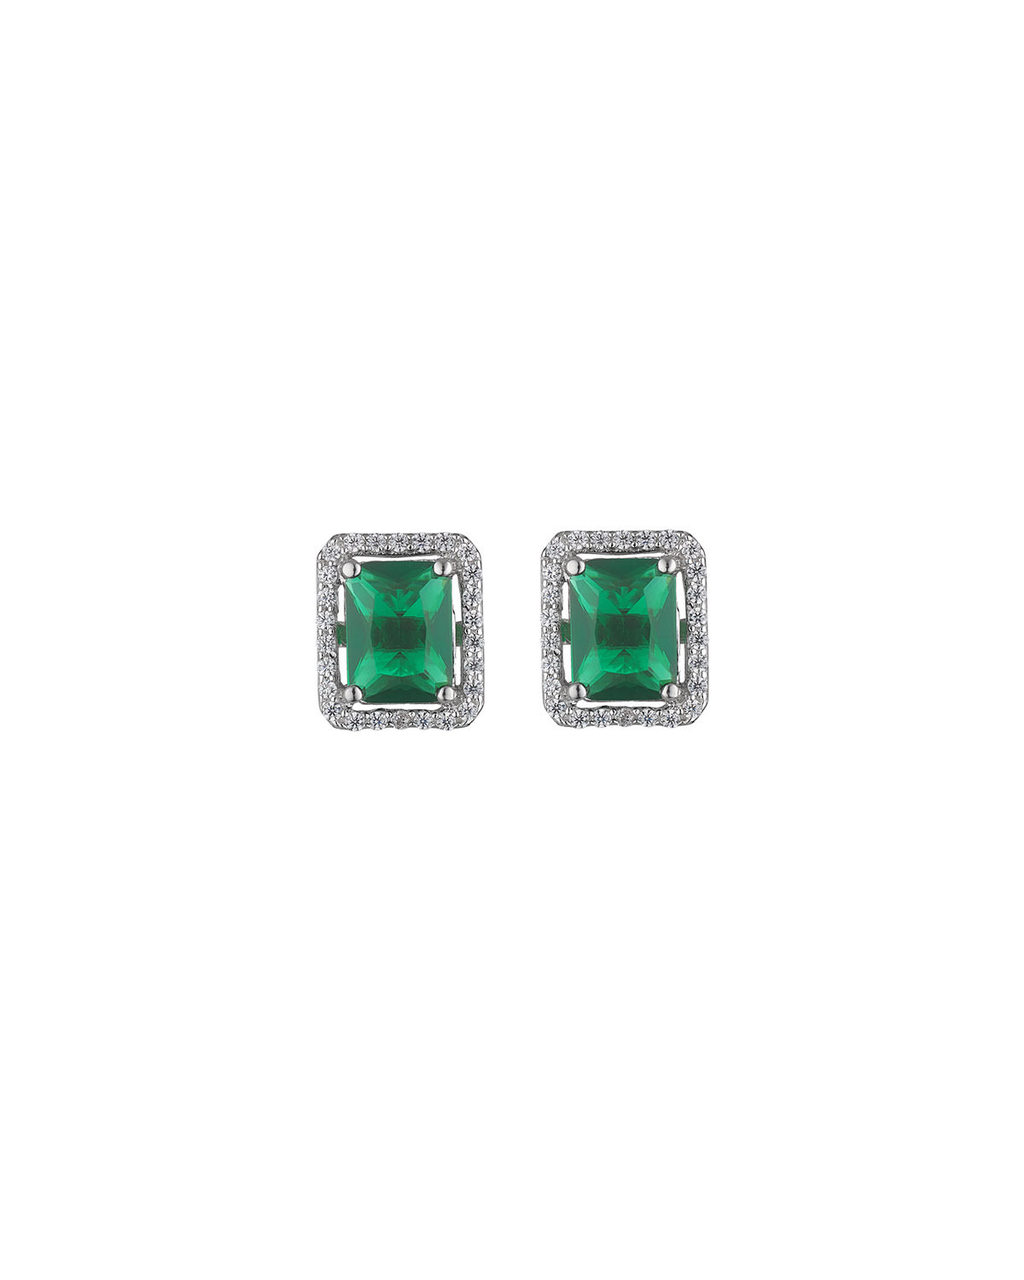 Emerald Rectangle Studs - predominant colour: emerald green; secondary colour: silver; occasions: evening, occasion; style: stud; length: short; size: standard; material: chain/metal; fastening: pierced; finish: metallic; embellishment: jewels/stone; season: s/s 2016; wardrobe: event